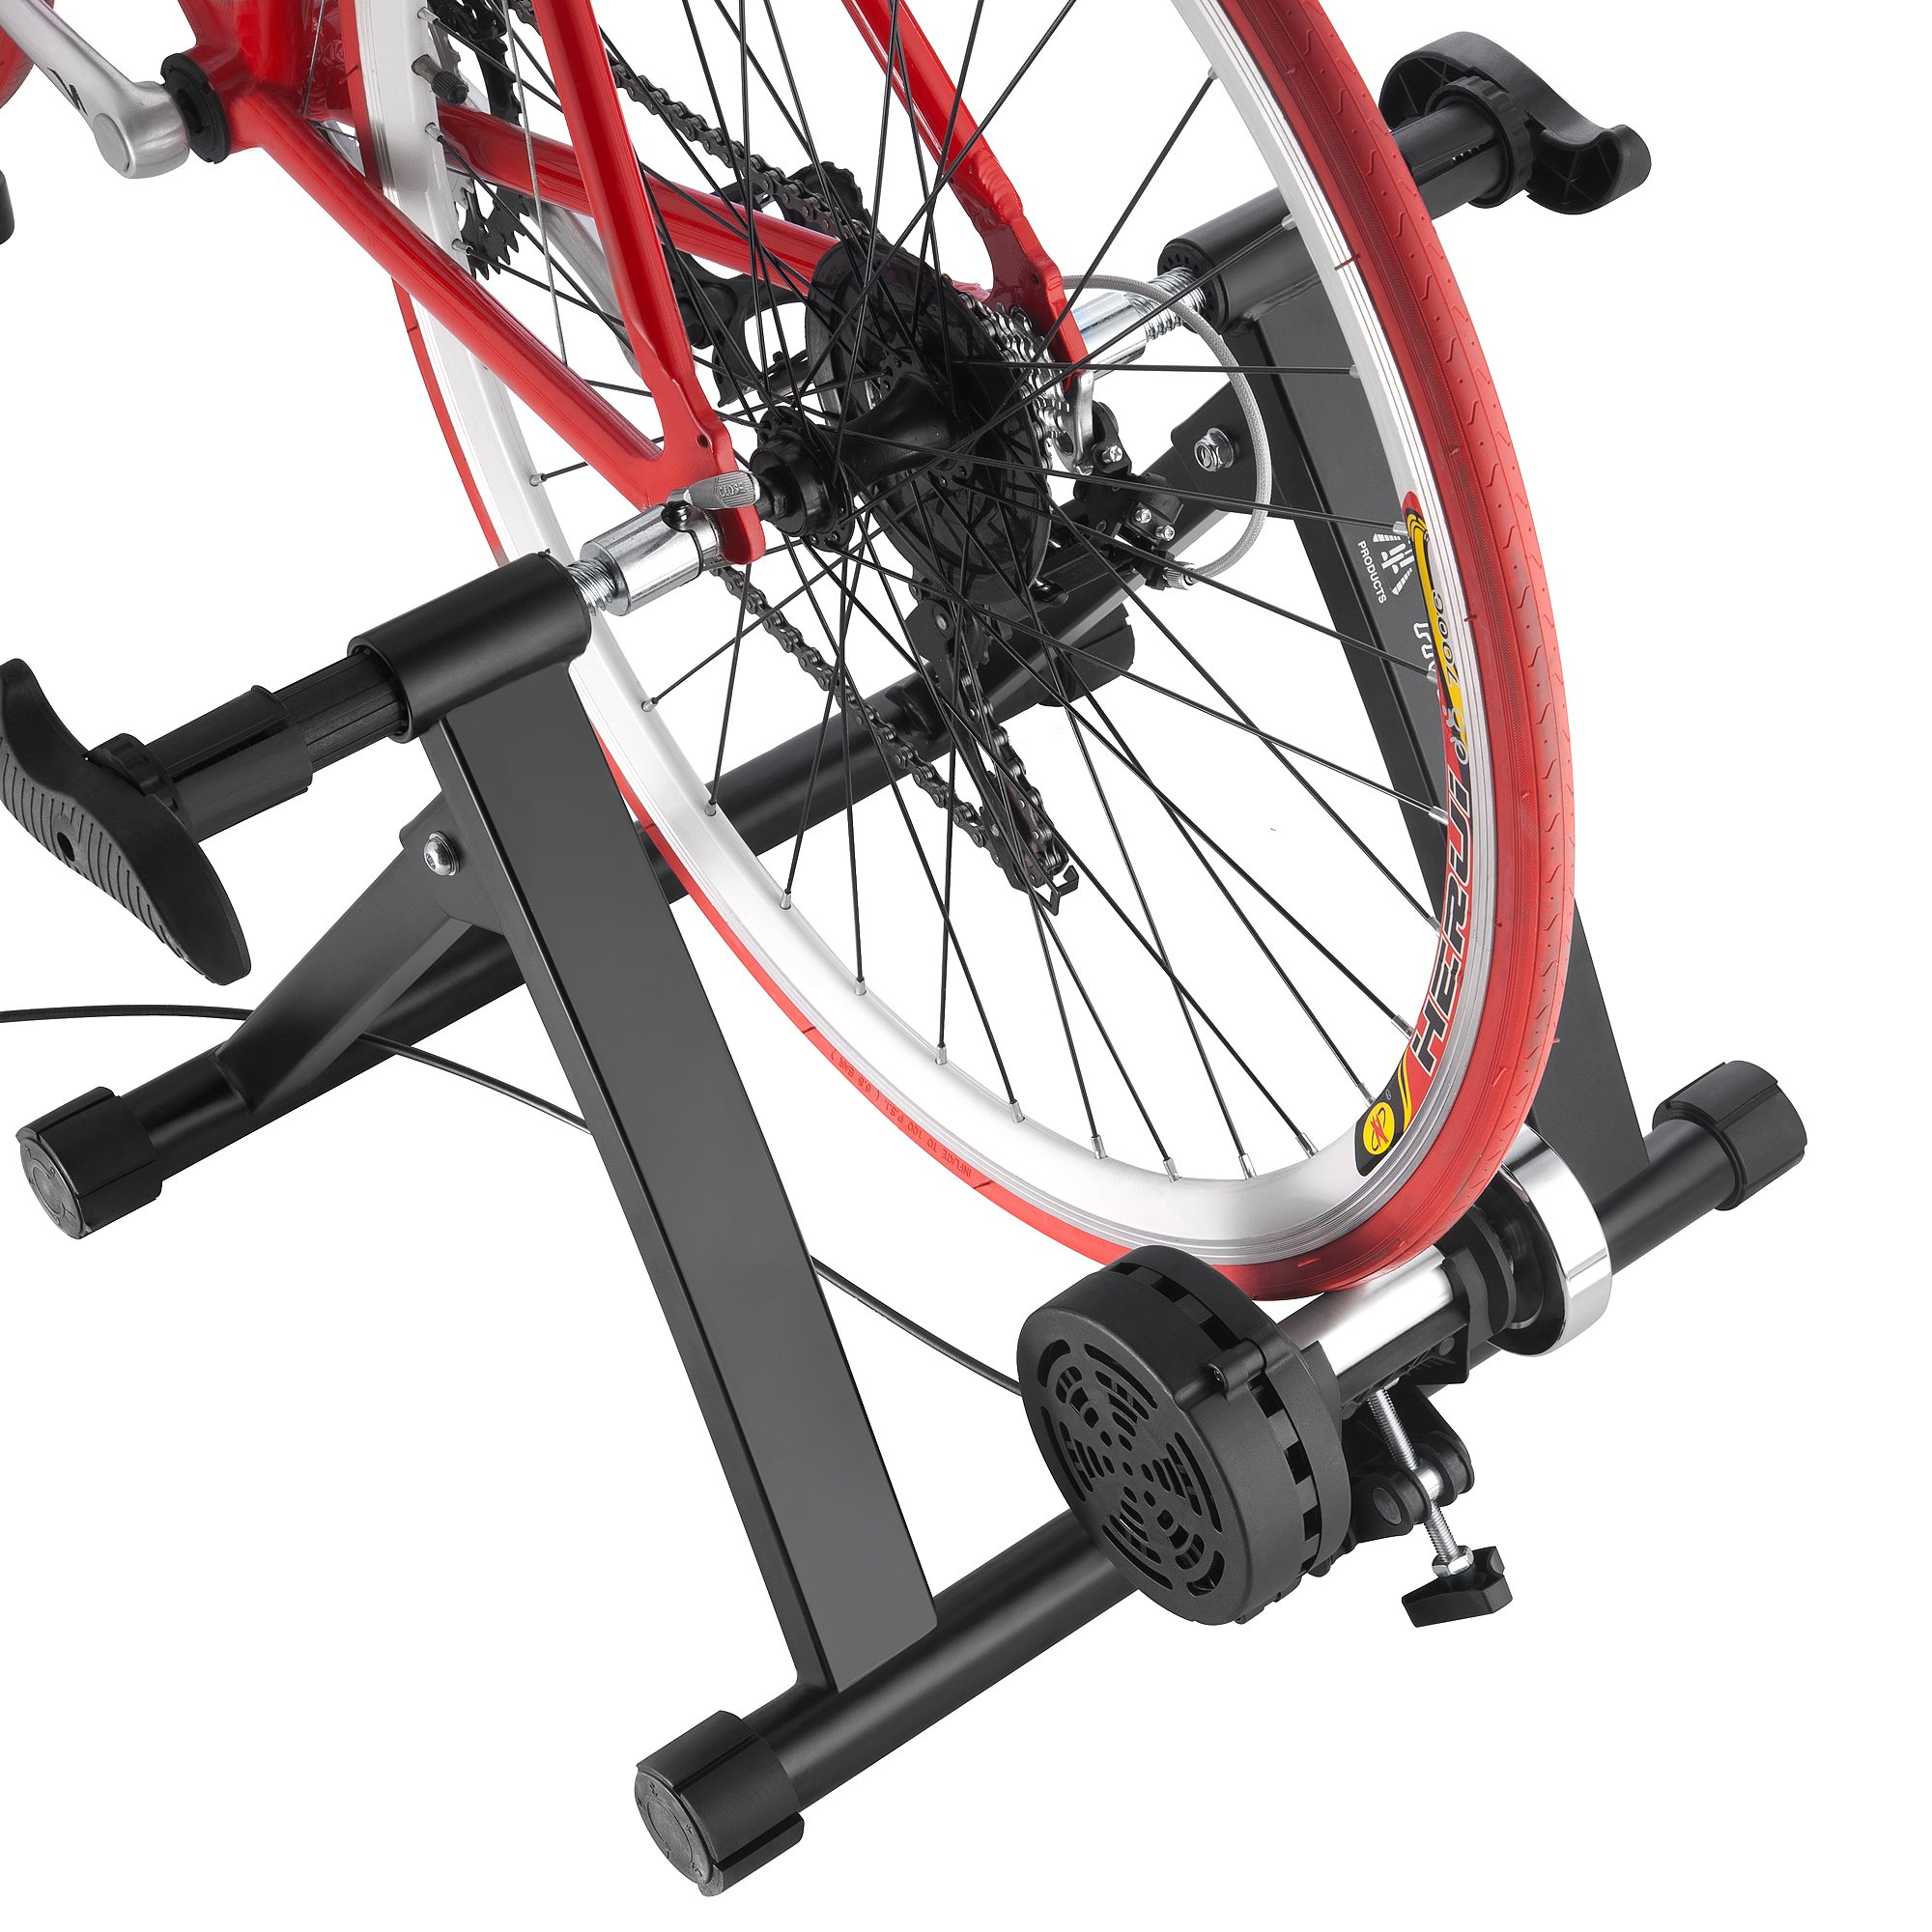 Bike Lane Pro Trainer Bicycle Indoor Trainer Exercise Machine Ride All Year by Bike Lane (Image #3)